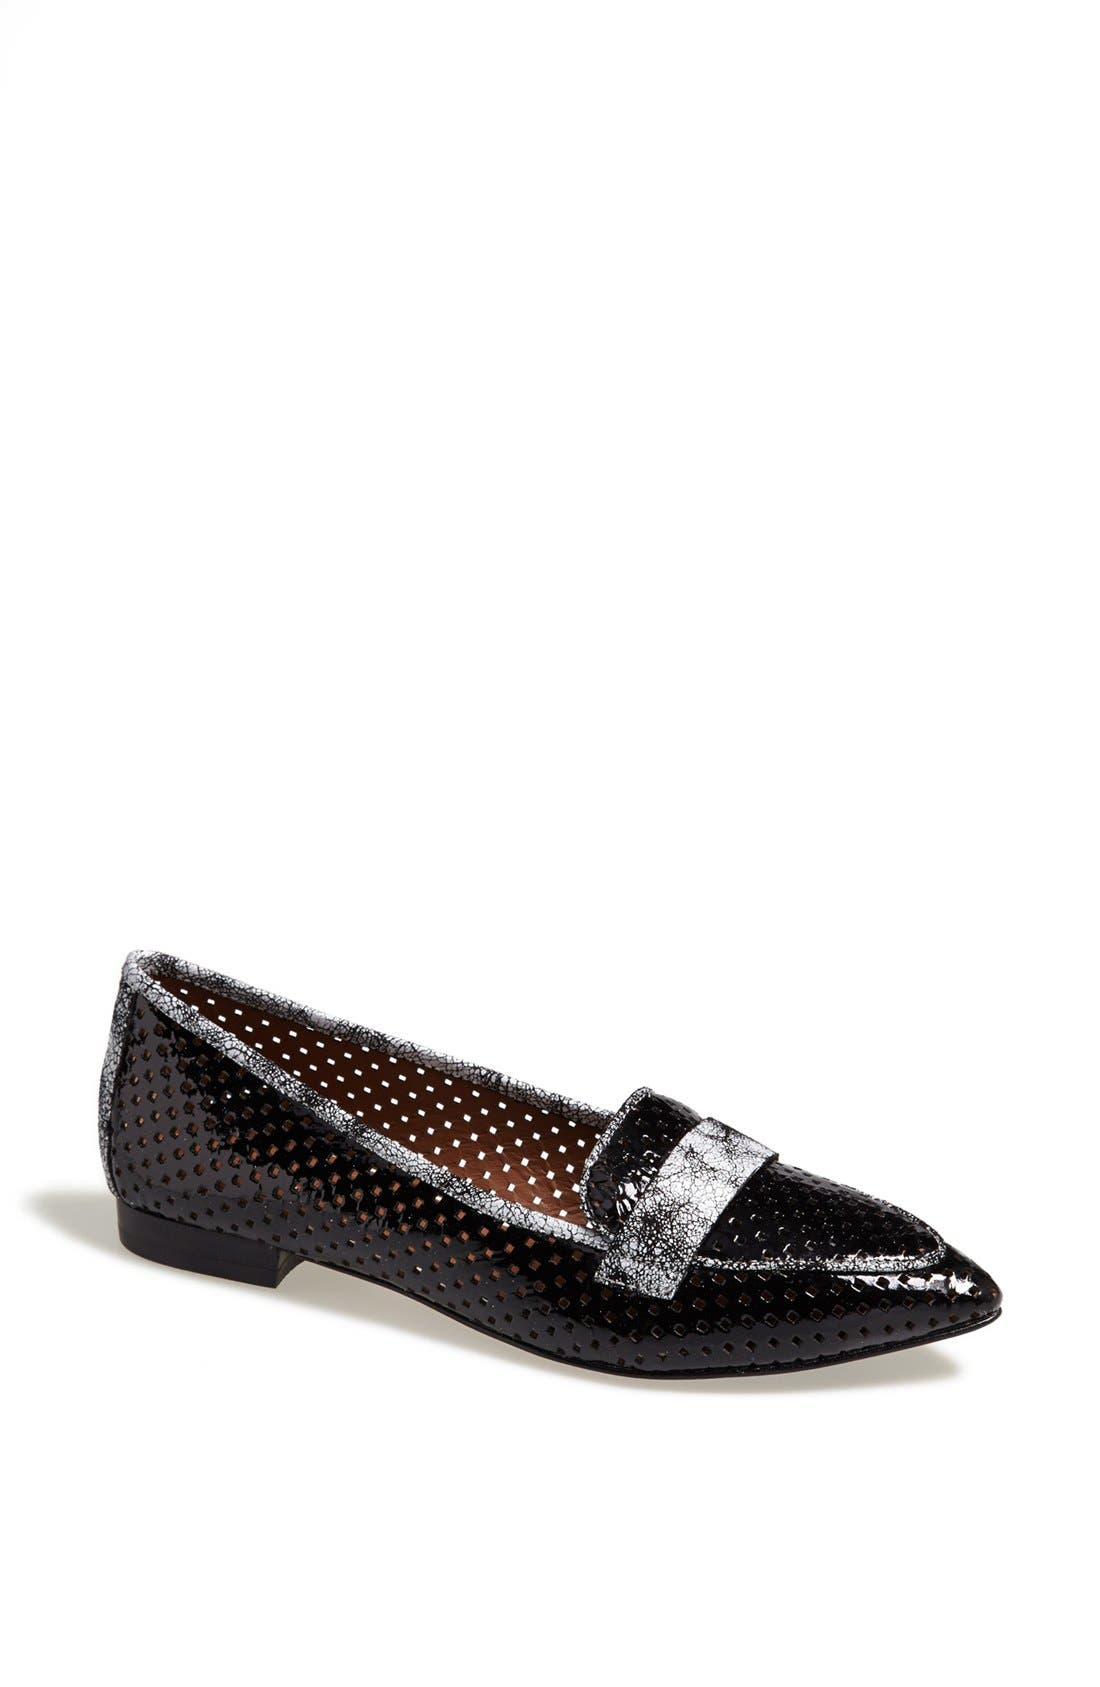 Main Image - Donald J Pliner 'Ava' Pointed Toe Flat